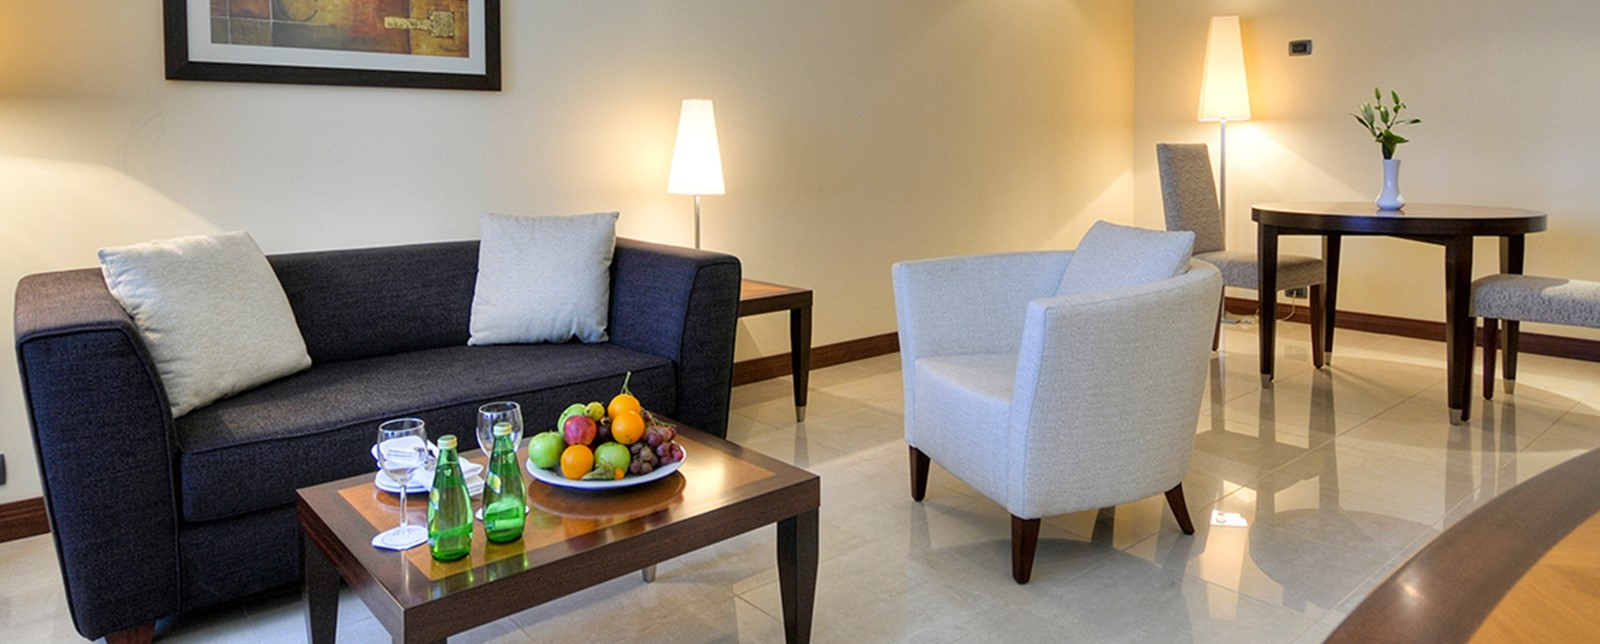 corinthia khartom executive suite living room